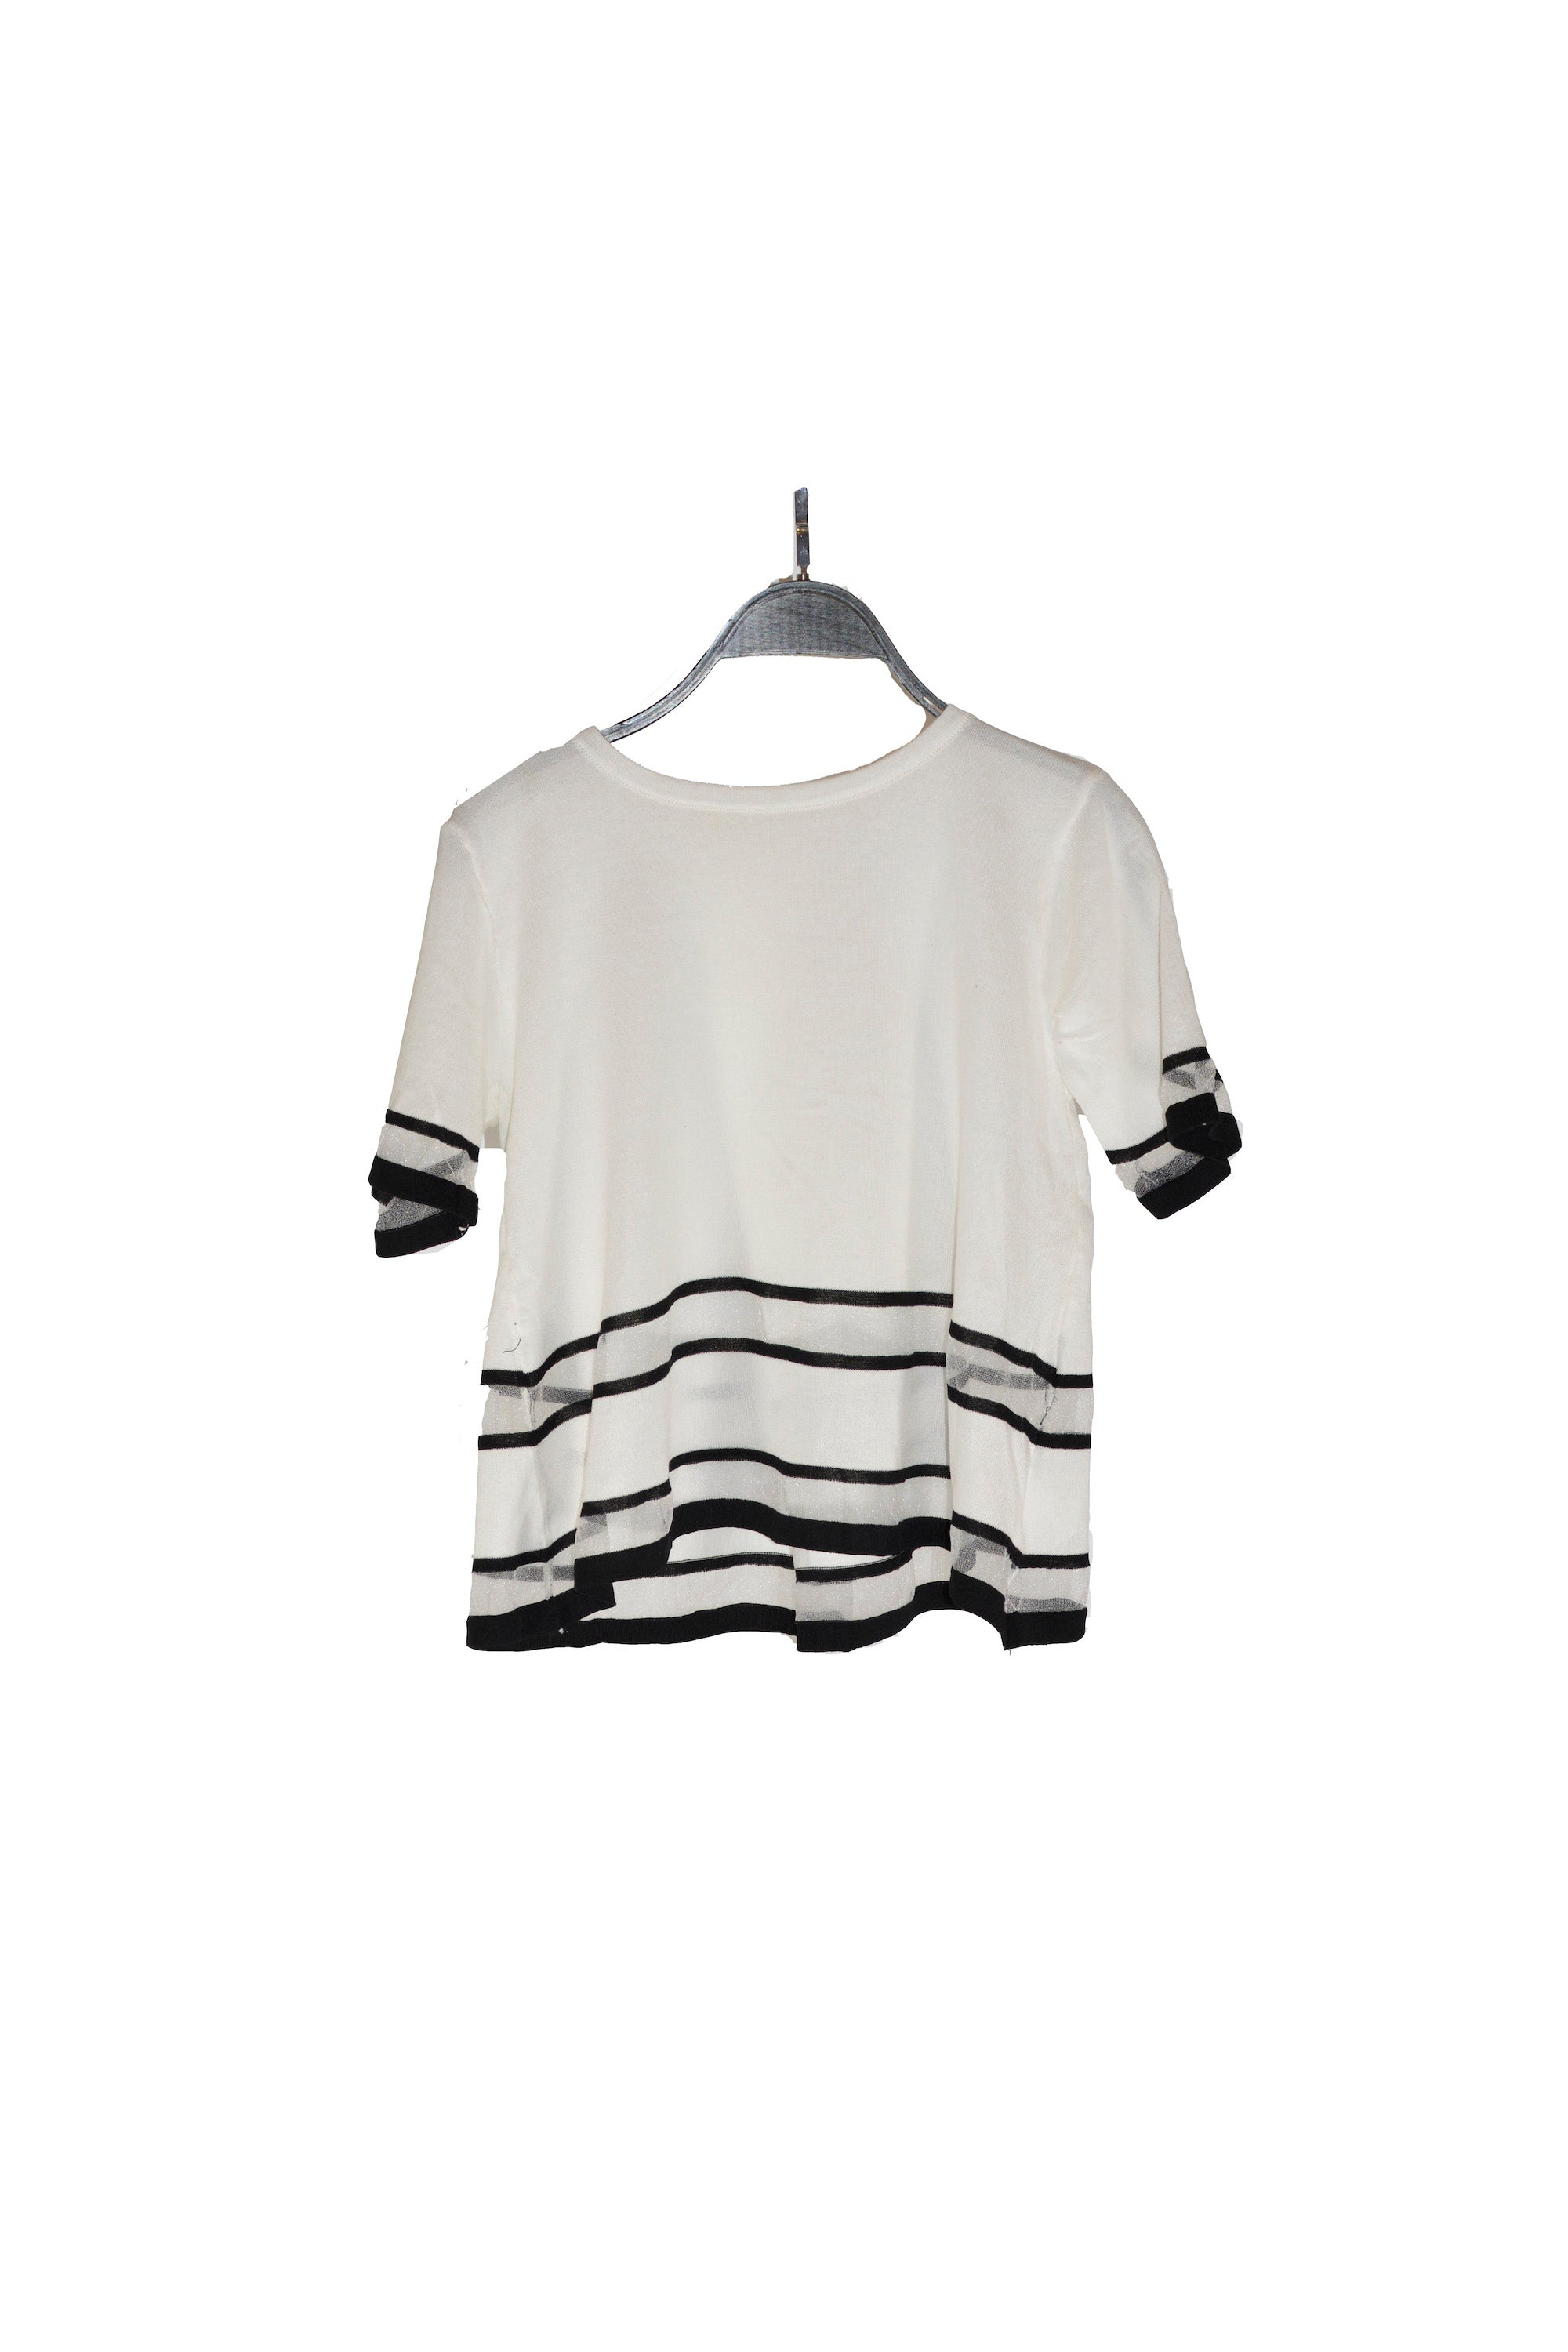 White Short Sleeves Top With Sheer Panel